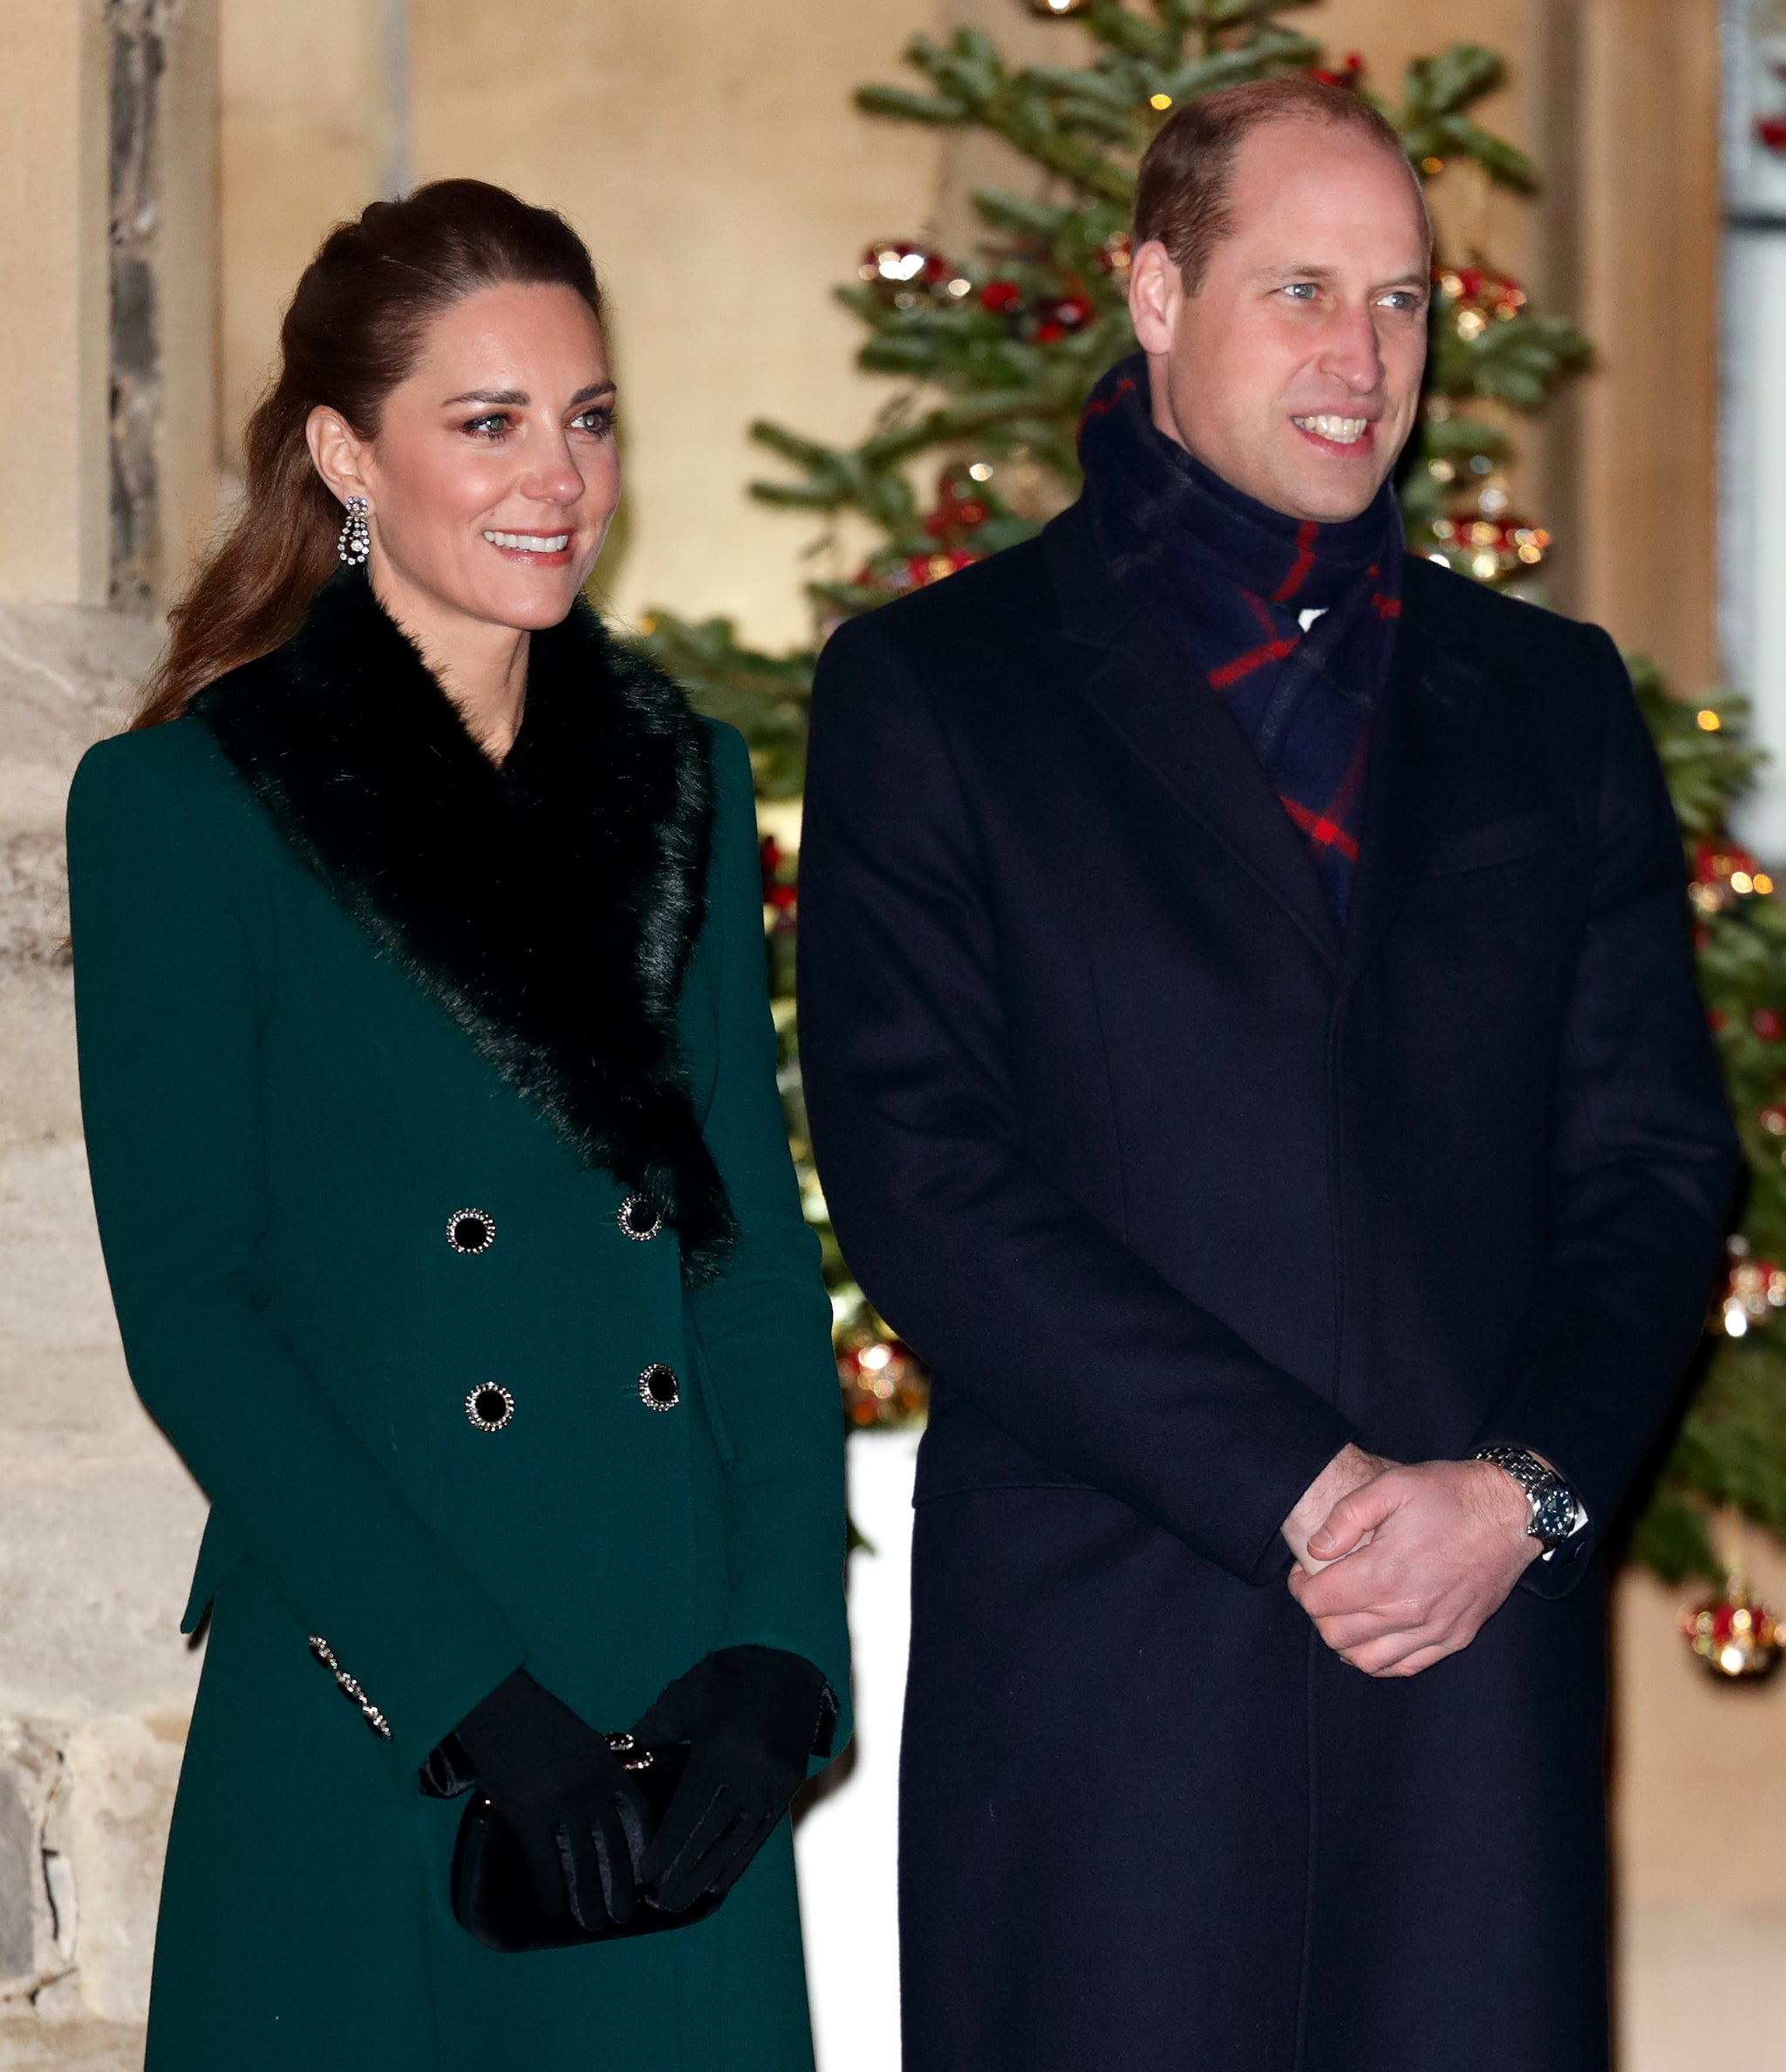 WINDSOR, UNITED KINGDOM - DECEMBER 08: (EMBARGOED FOR PUBLICATION IN UK NEWSPAPERS UNTIL 24 HOURS AFTER CREATE DATE AND TIME) Catherine, Duchess of Cambridge and  Prince William, Duke of Cambridge attend an event to thank local volunteers and key workers from organisations and charities in Berkshire, who will be volunteering or working to help others over the Christmas period in the quadrangle of Windsor Castle on December 8, 2020 in Windsor, England. During the event members of the Royal Family also listened to Christmas carols performed by The Salvation Army Band. (Photo by Max Mumby/Indigo - Pool/Getty Images)